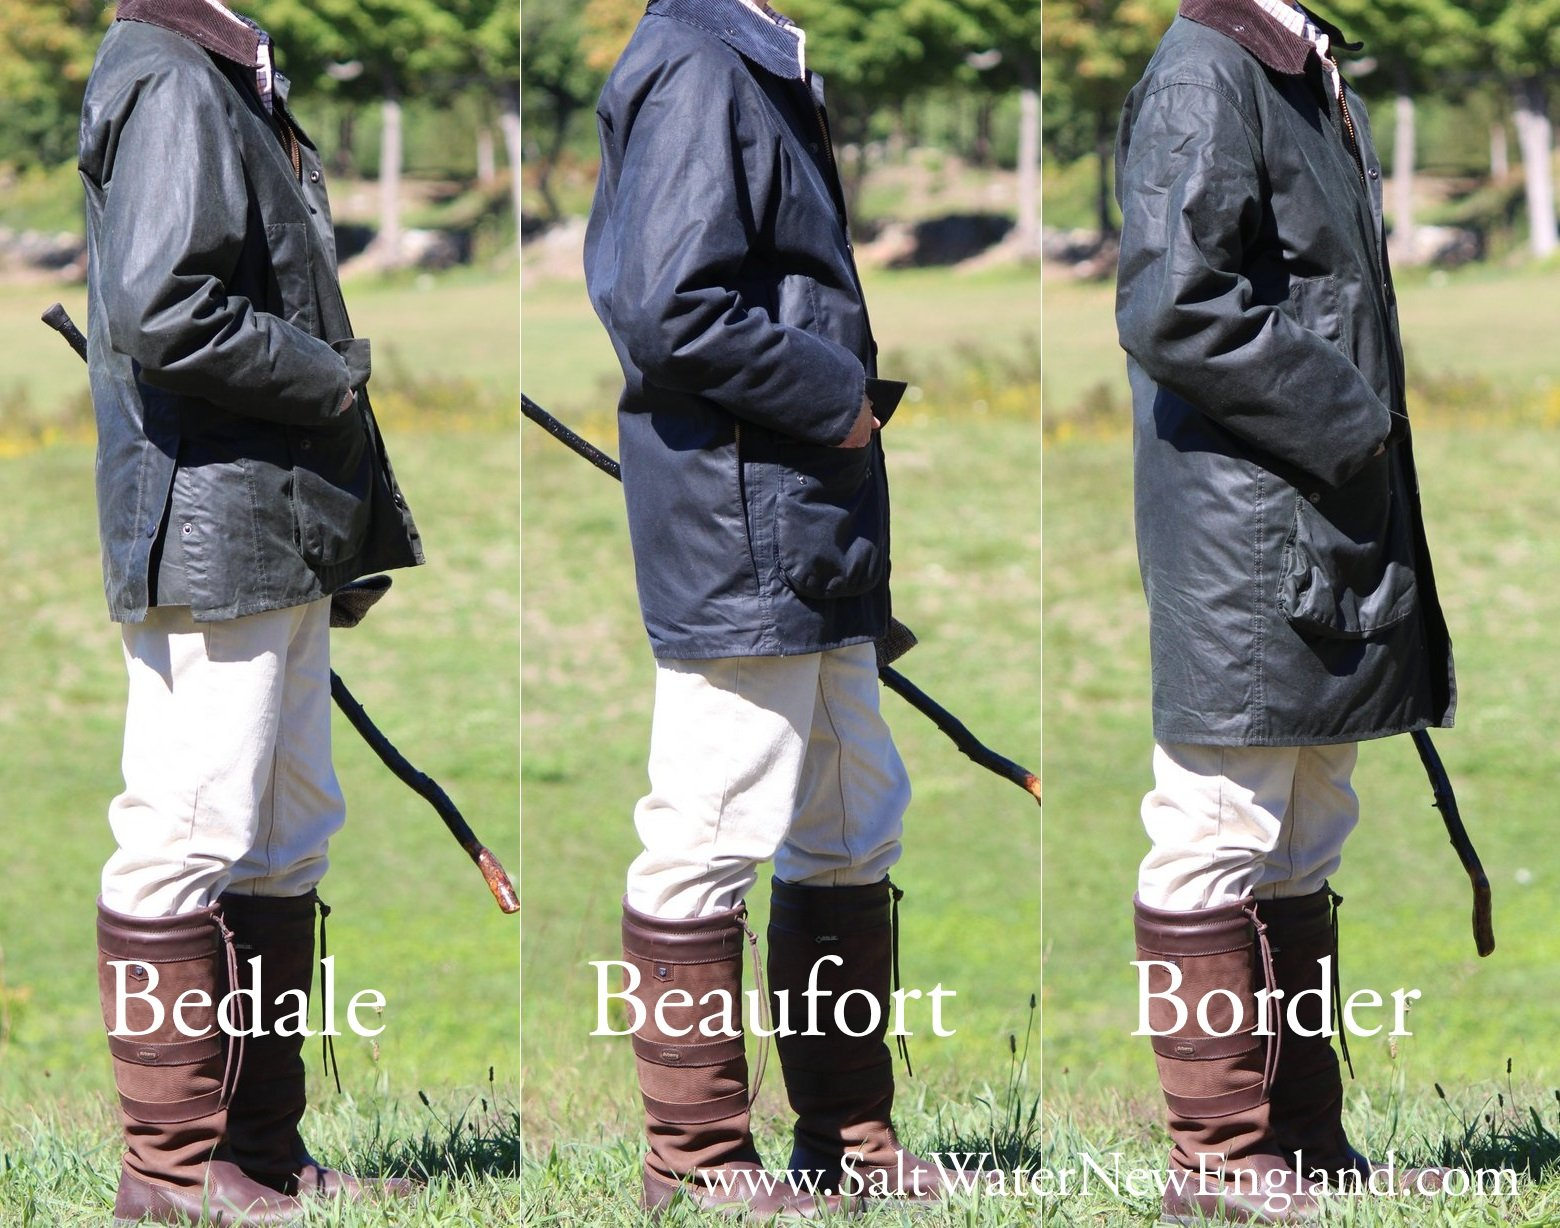 exquisite design unique design quality design Salt Water New England: Barbour Jackets: Bedale vs. Beaufort ...